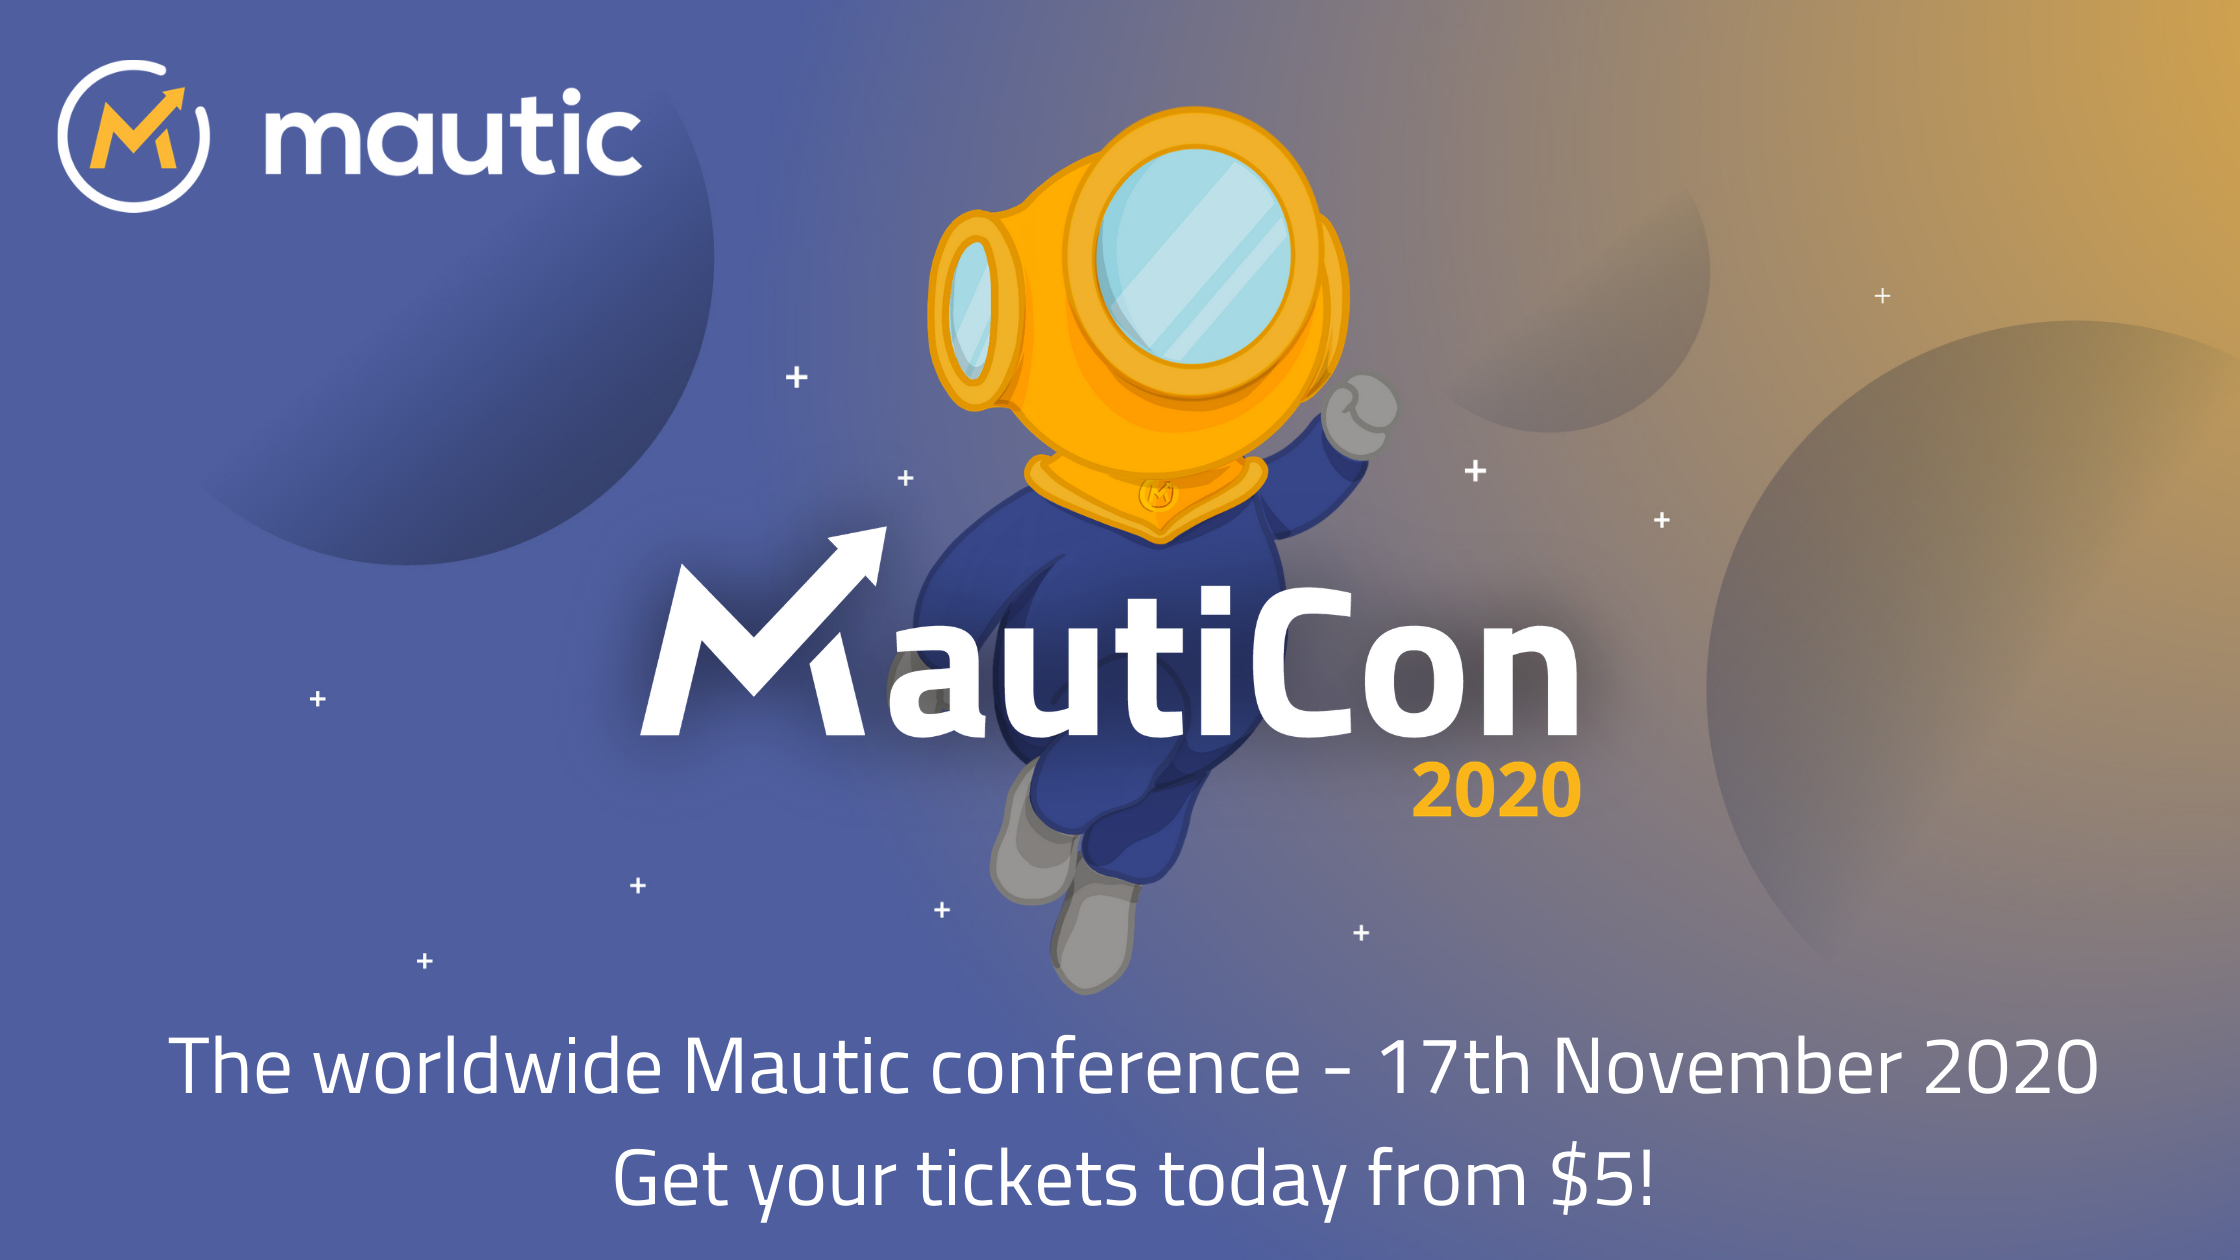 Mautinaut behind the MautiCon logo with stars in the background, text saying The worldwide Mautic Conference - 17th November 2020 - Get your tickets today from $5.